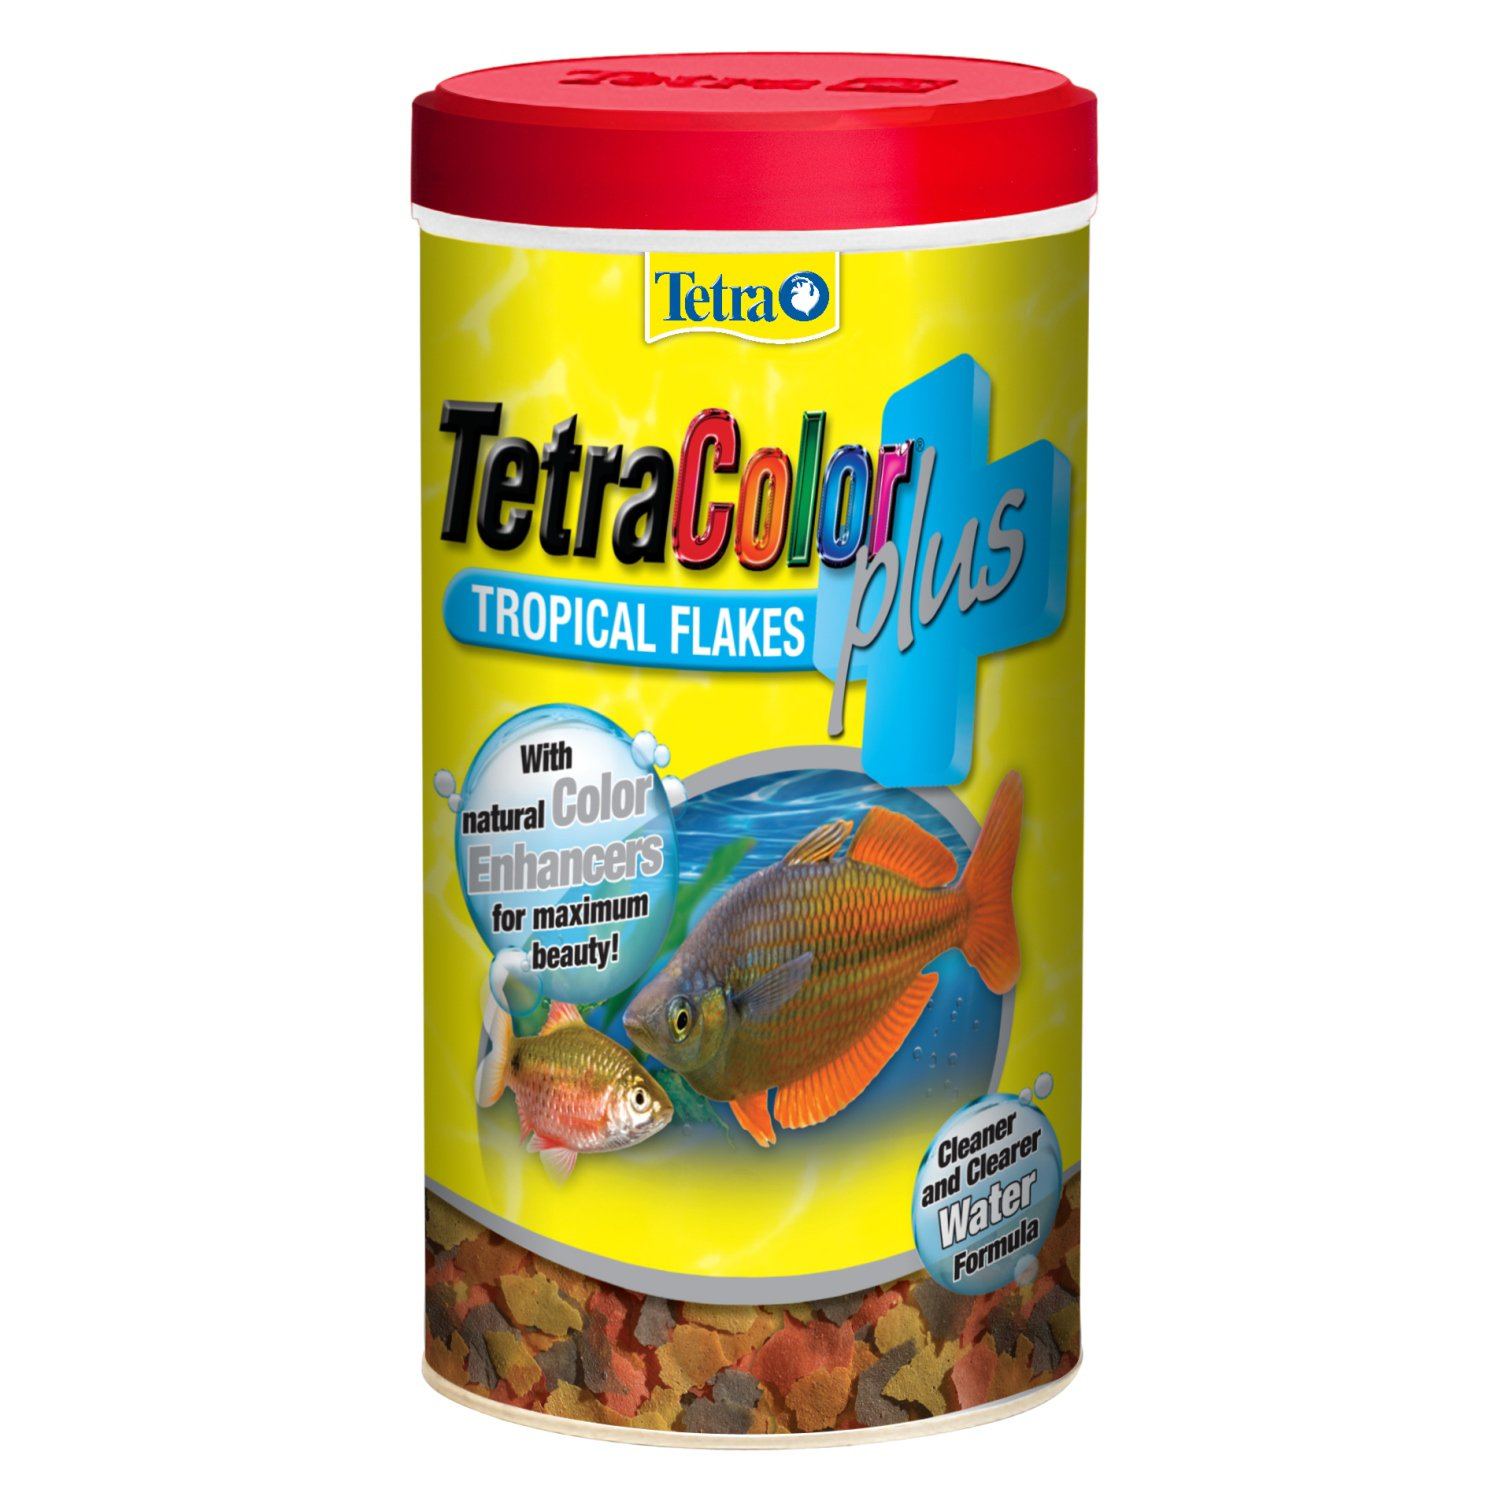 Tetracolor plus tropical flakes petco for Fish food flakes